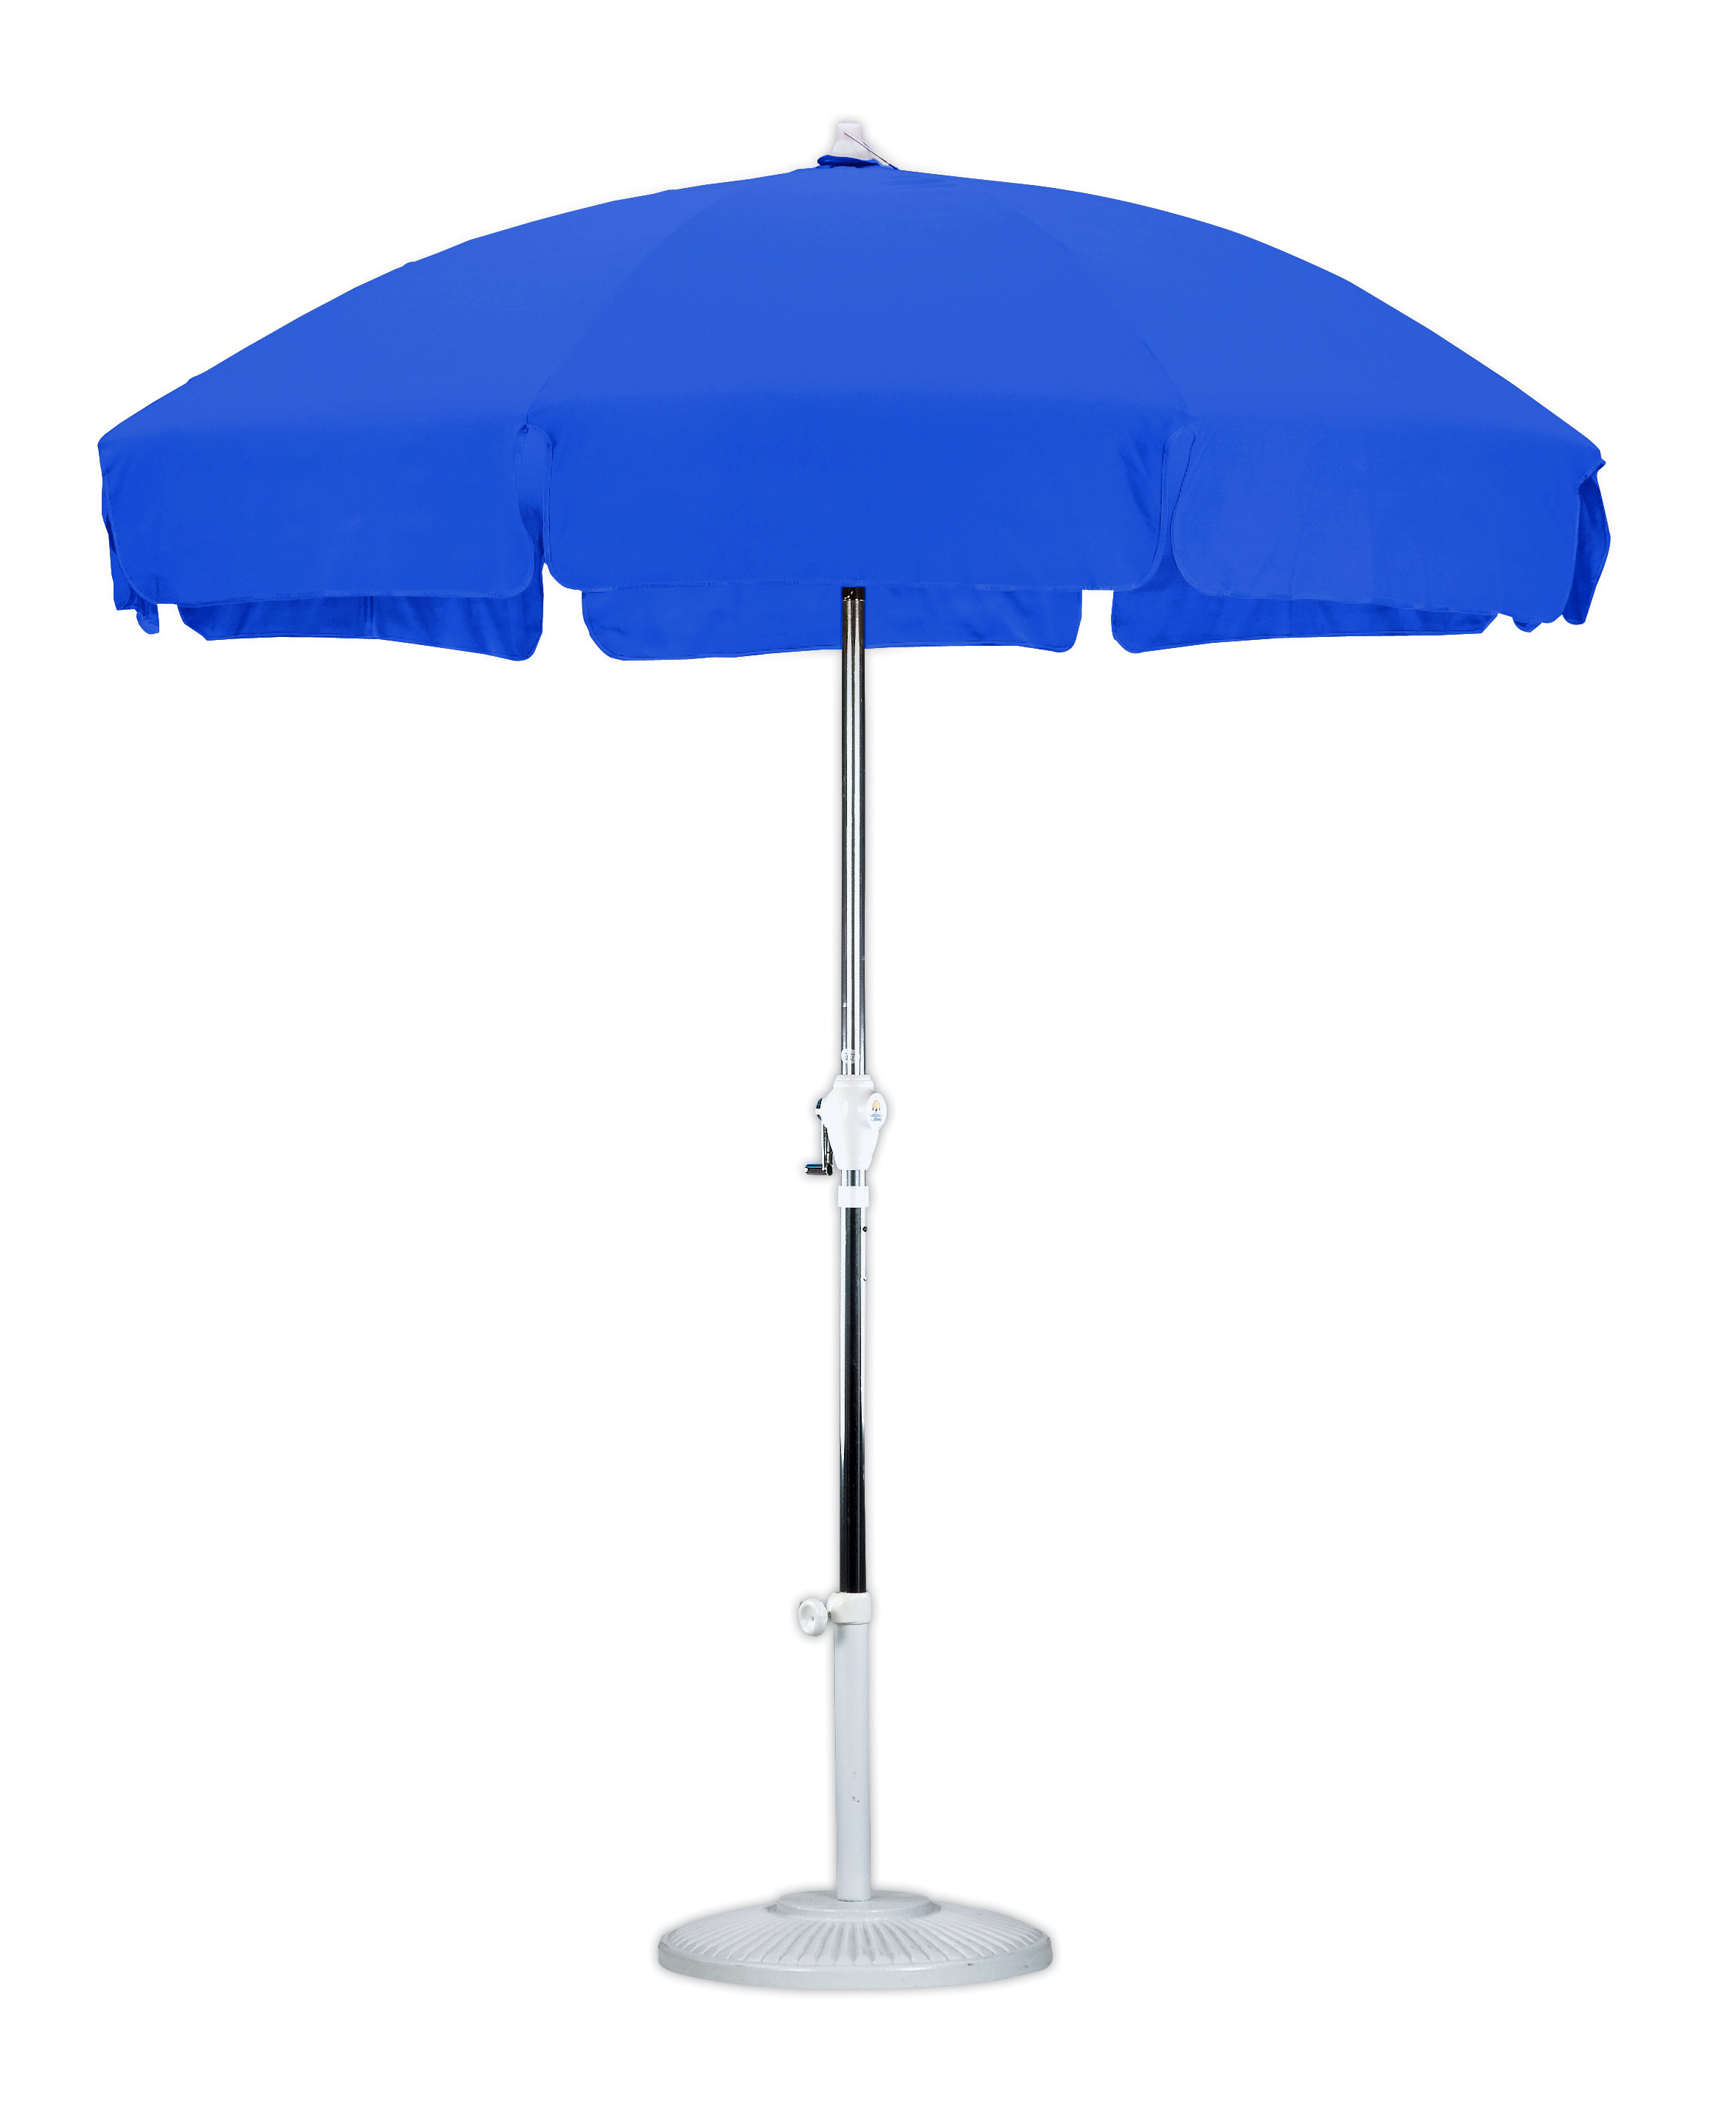 2019 Kerner Steel Beach Umbrellas Regarding 7.5' Market Umbrella (Gallery 9 of 20)